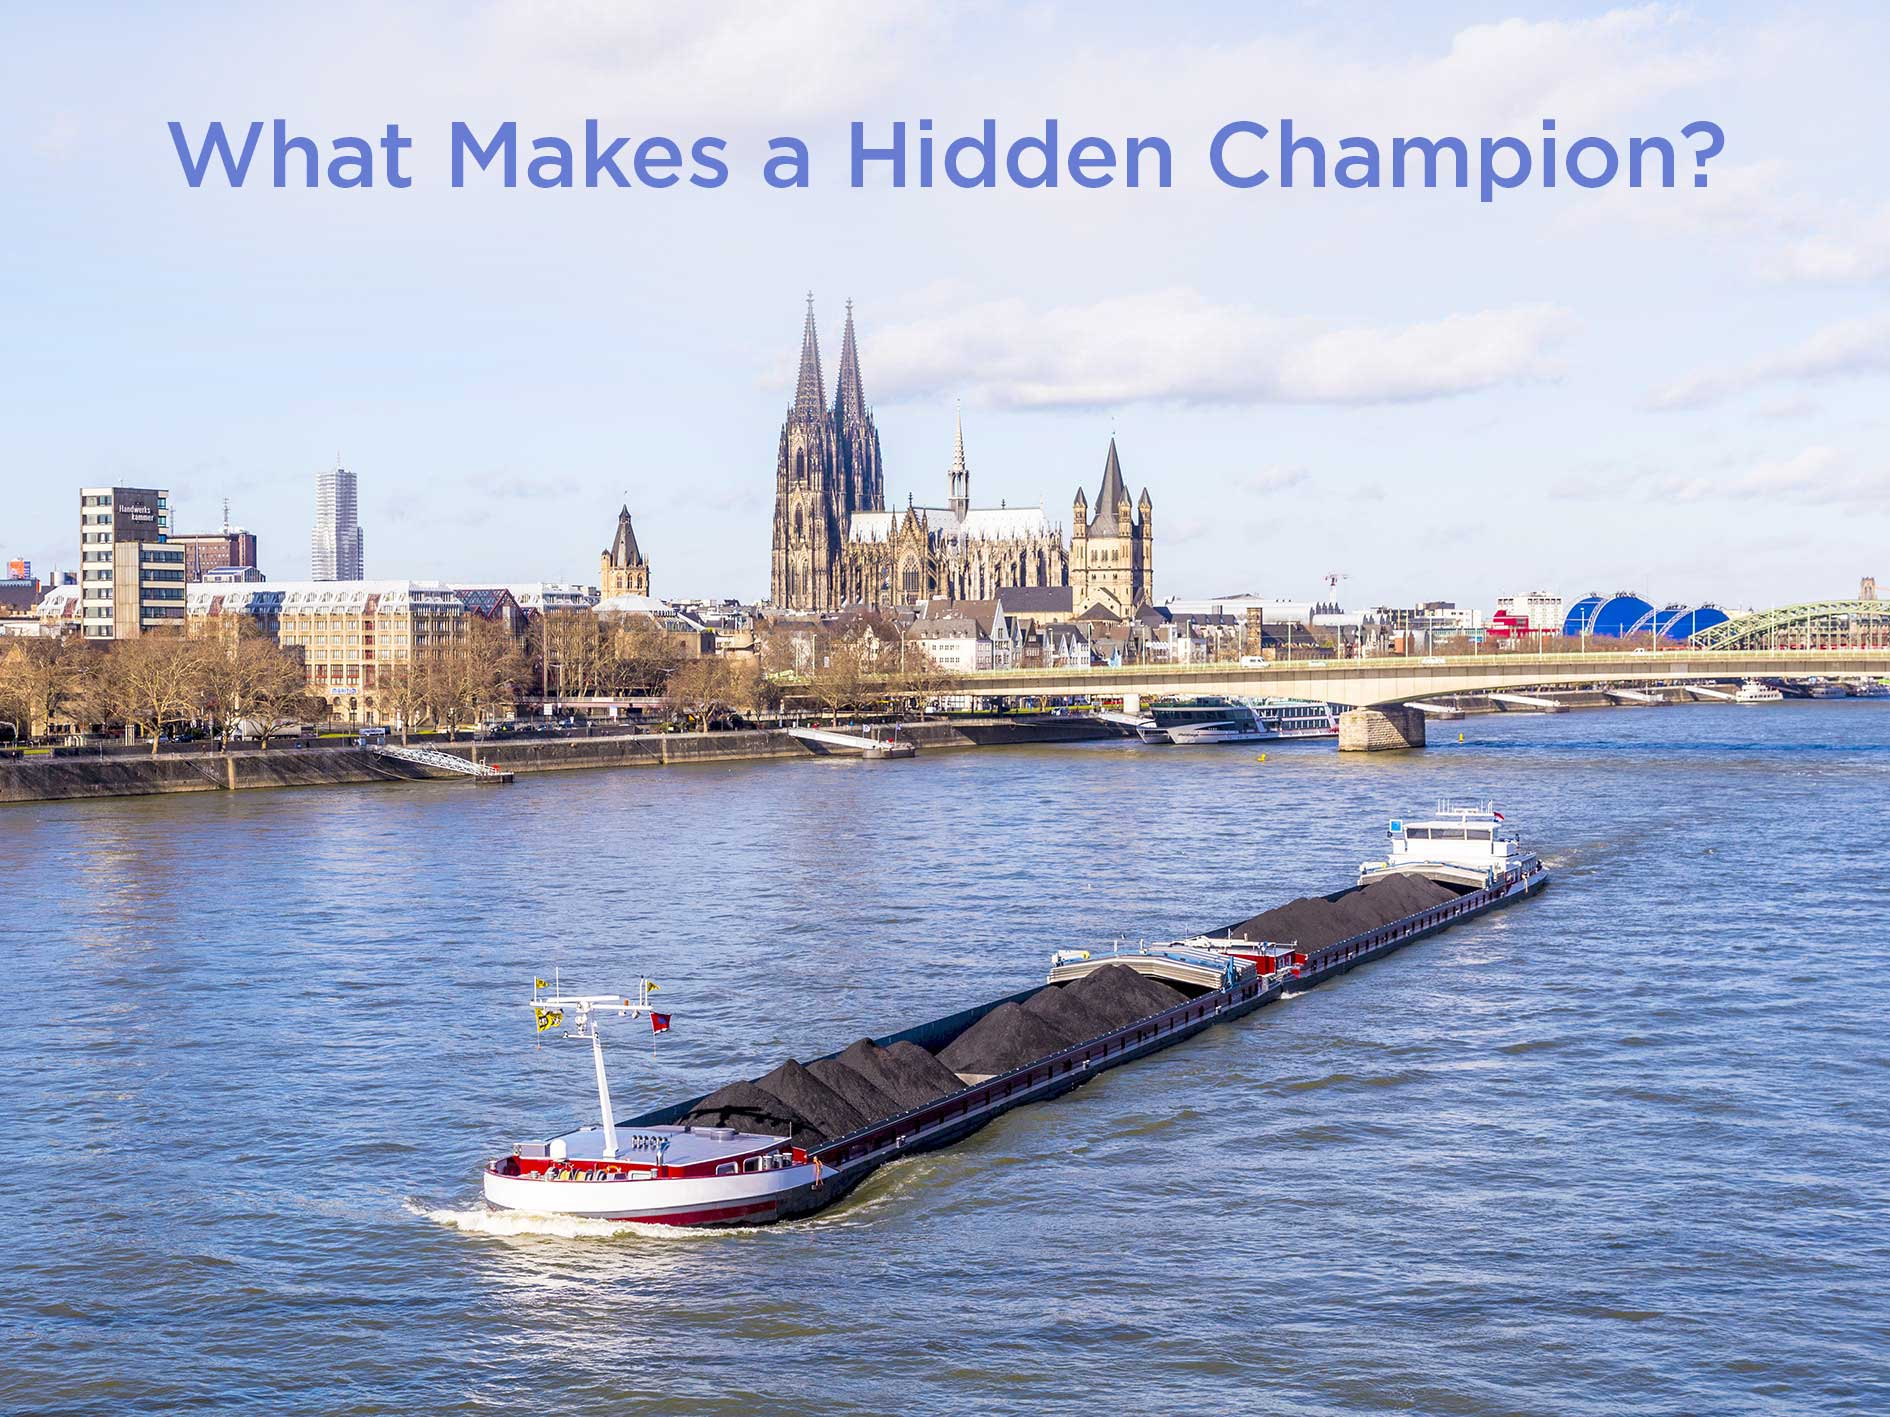 What makes a Hidden Champion?